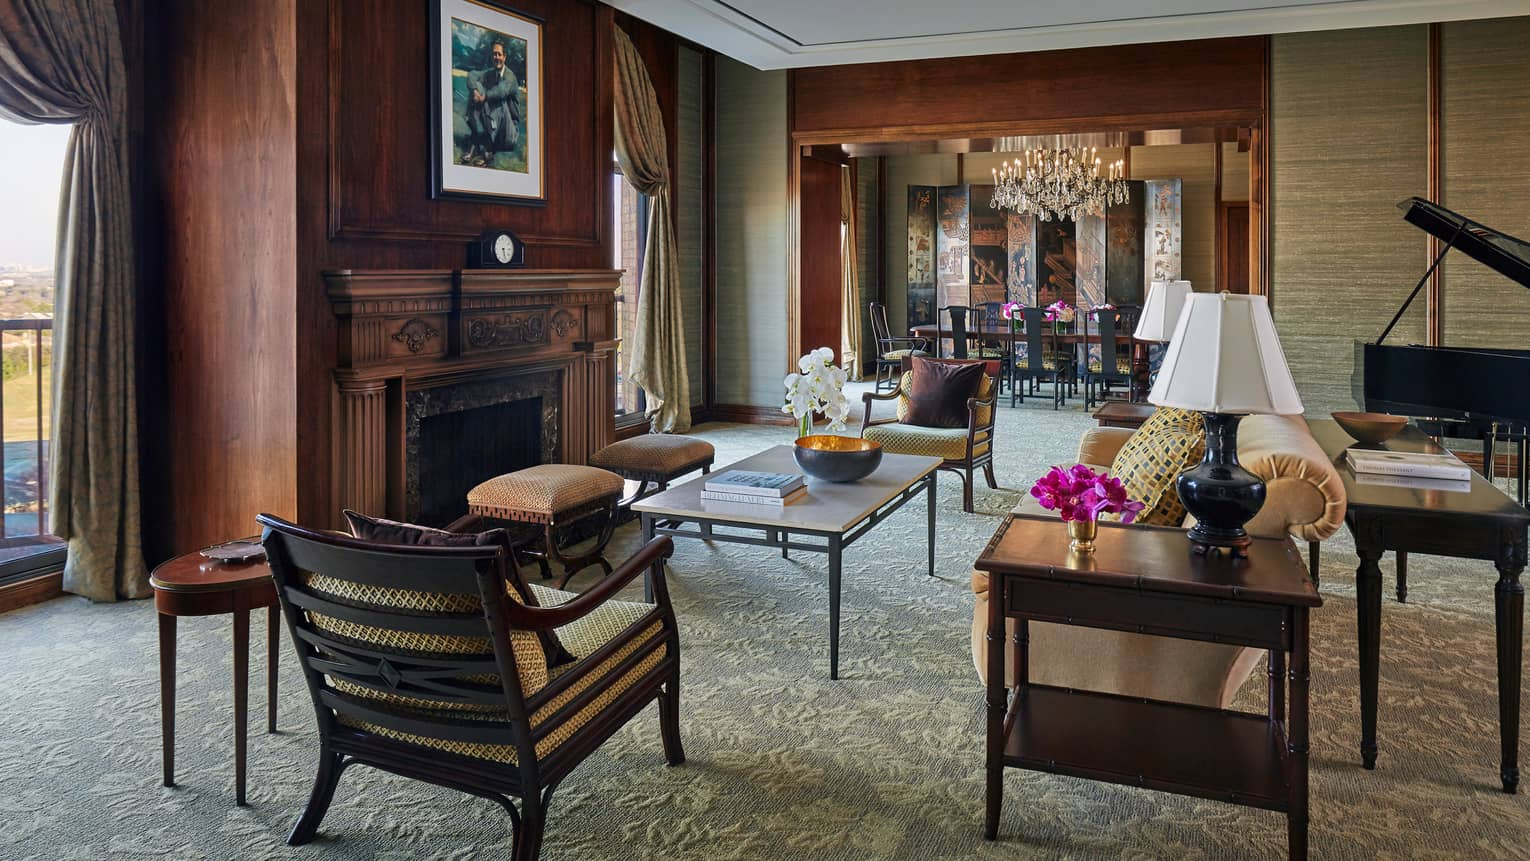 Byron Nelson Suite dark wood walls, fireplace, seating area under soaring ceilings